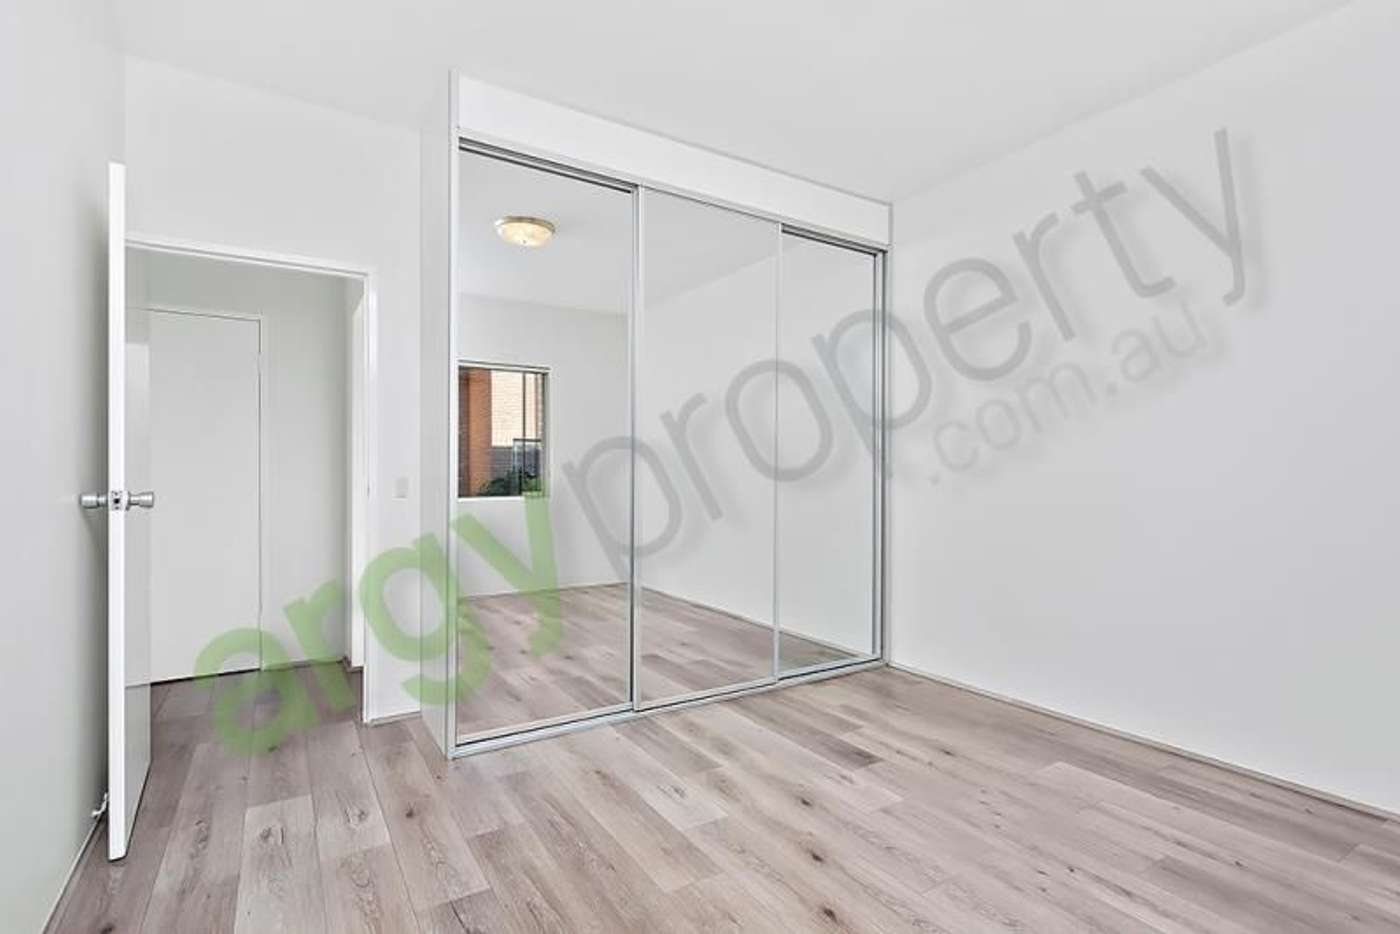 Seventh view of Homely unit listing, 4/8-10 President Ave, Kogarah NSW 2217